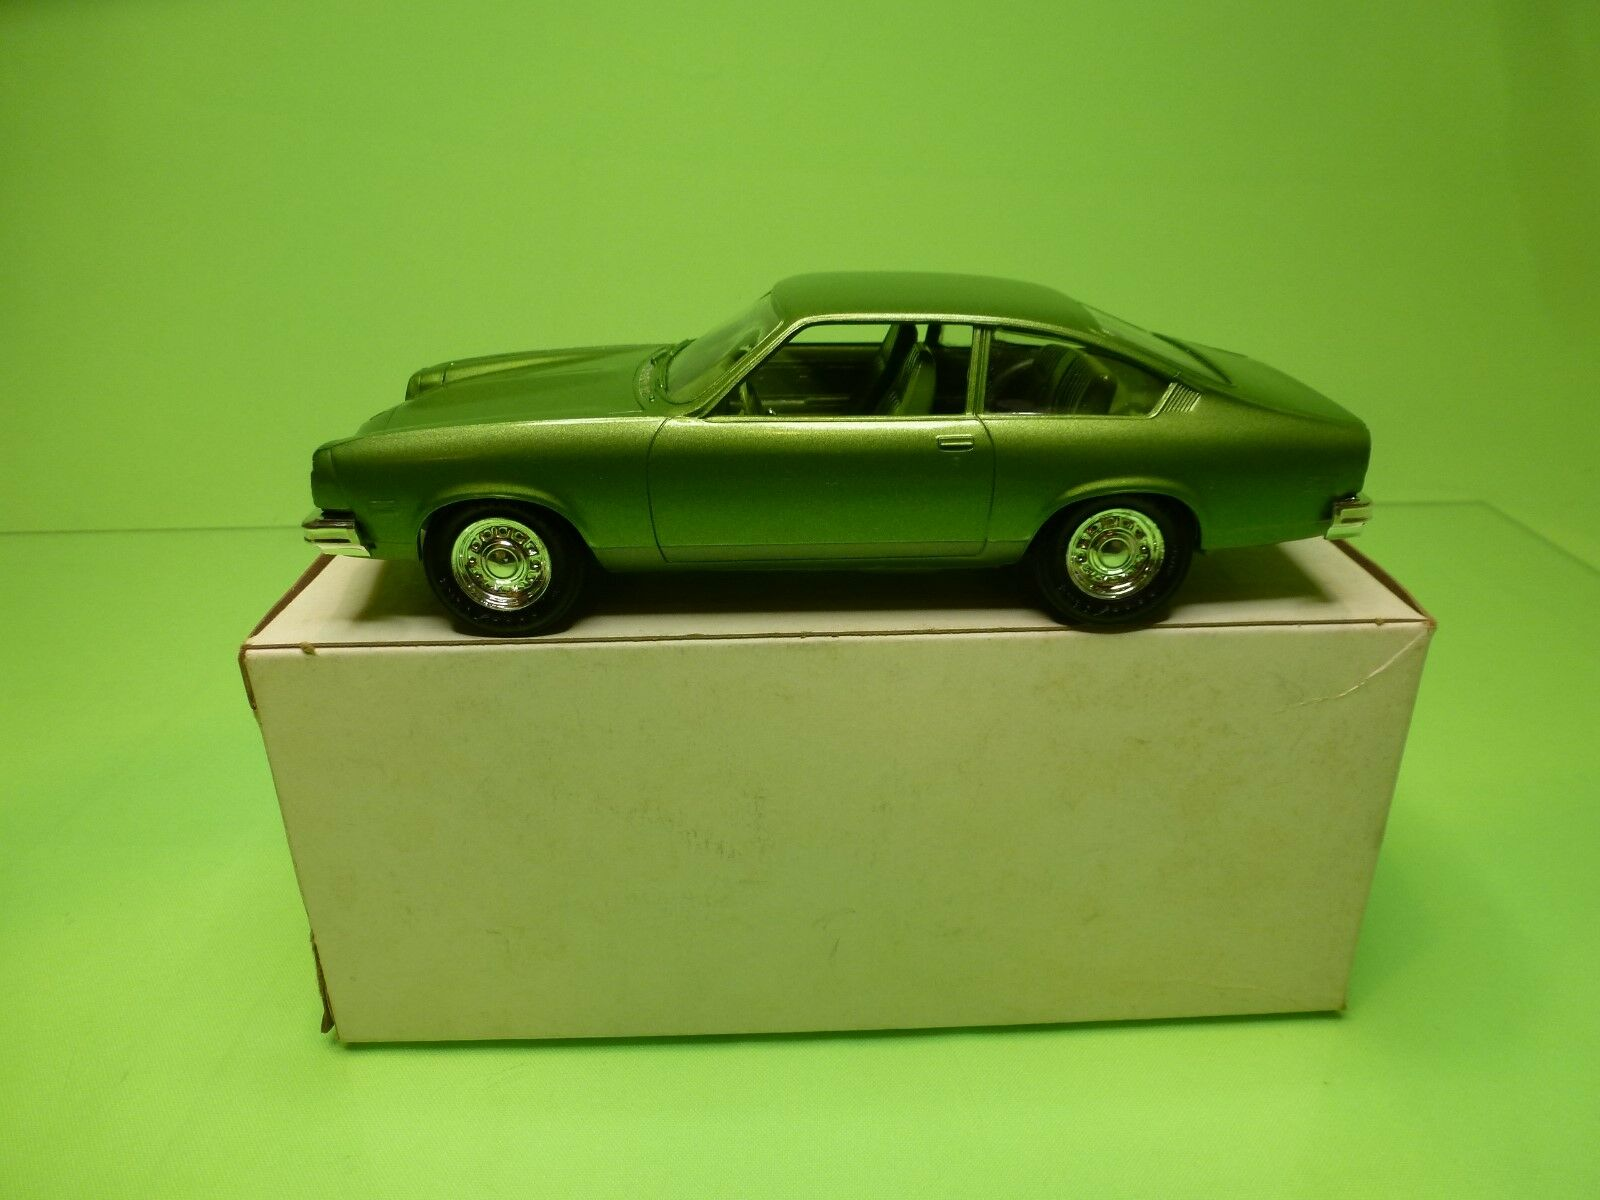 MPC  1:25  PROMO - CHEVROLET VEGA 1976 LIME GREEN   - GOOD CONDITION IN BOX